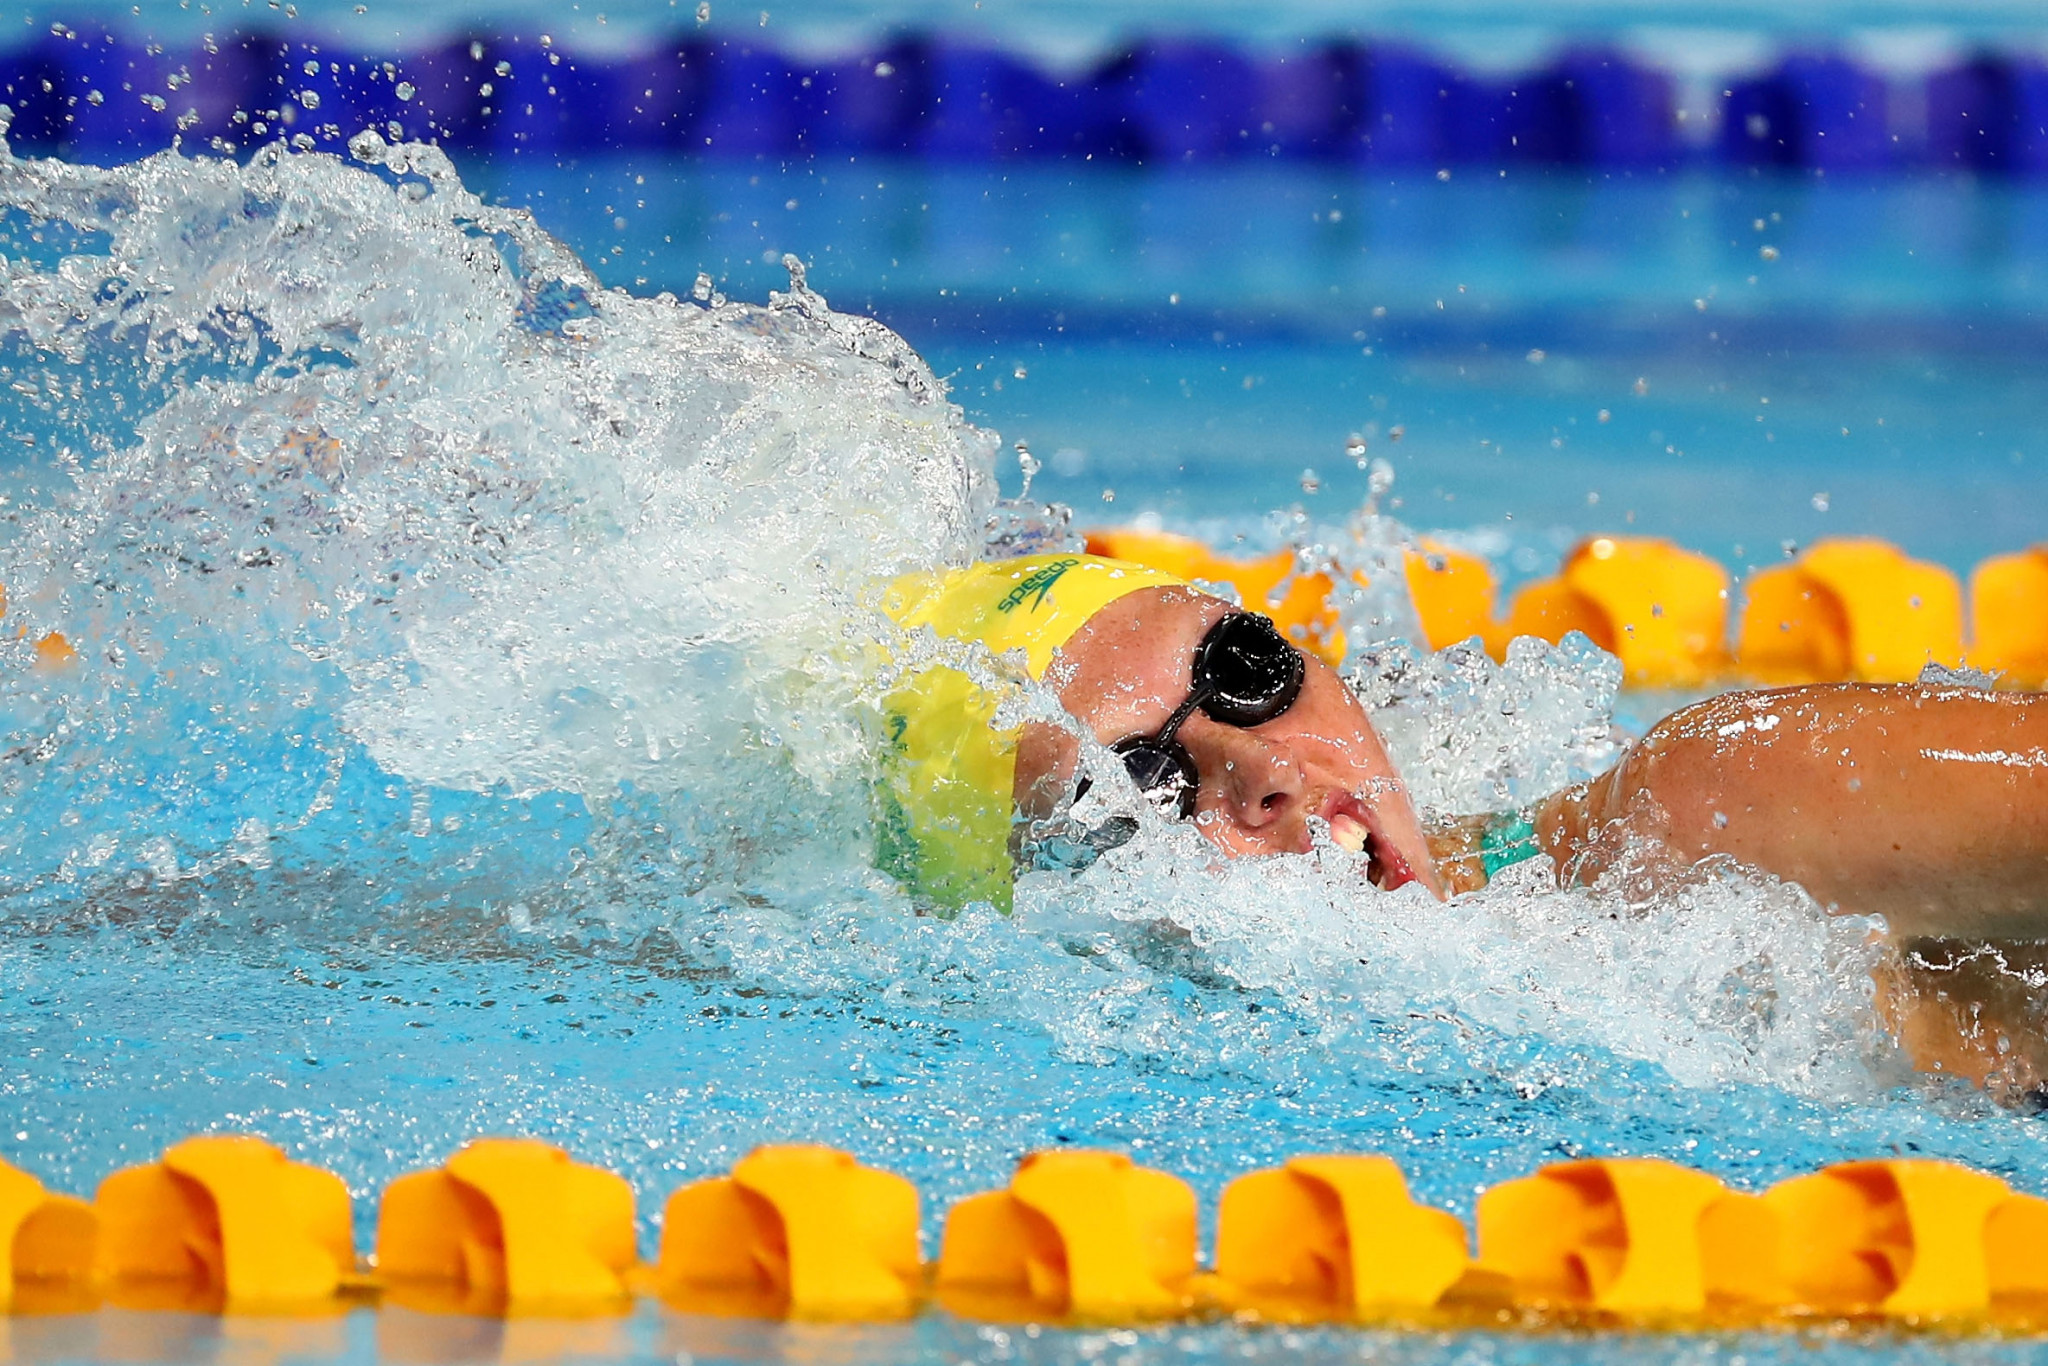 Paralympic champions poised for Pan Pacific Para Swimming Championships in Cairns